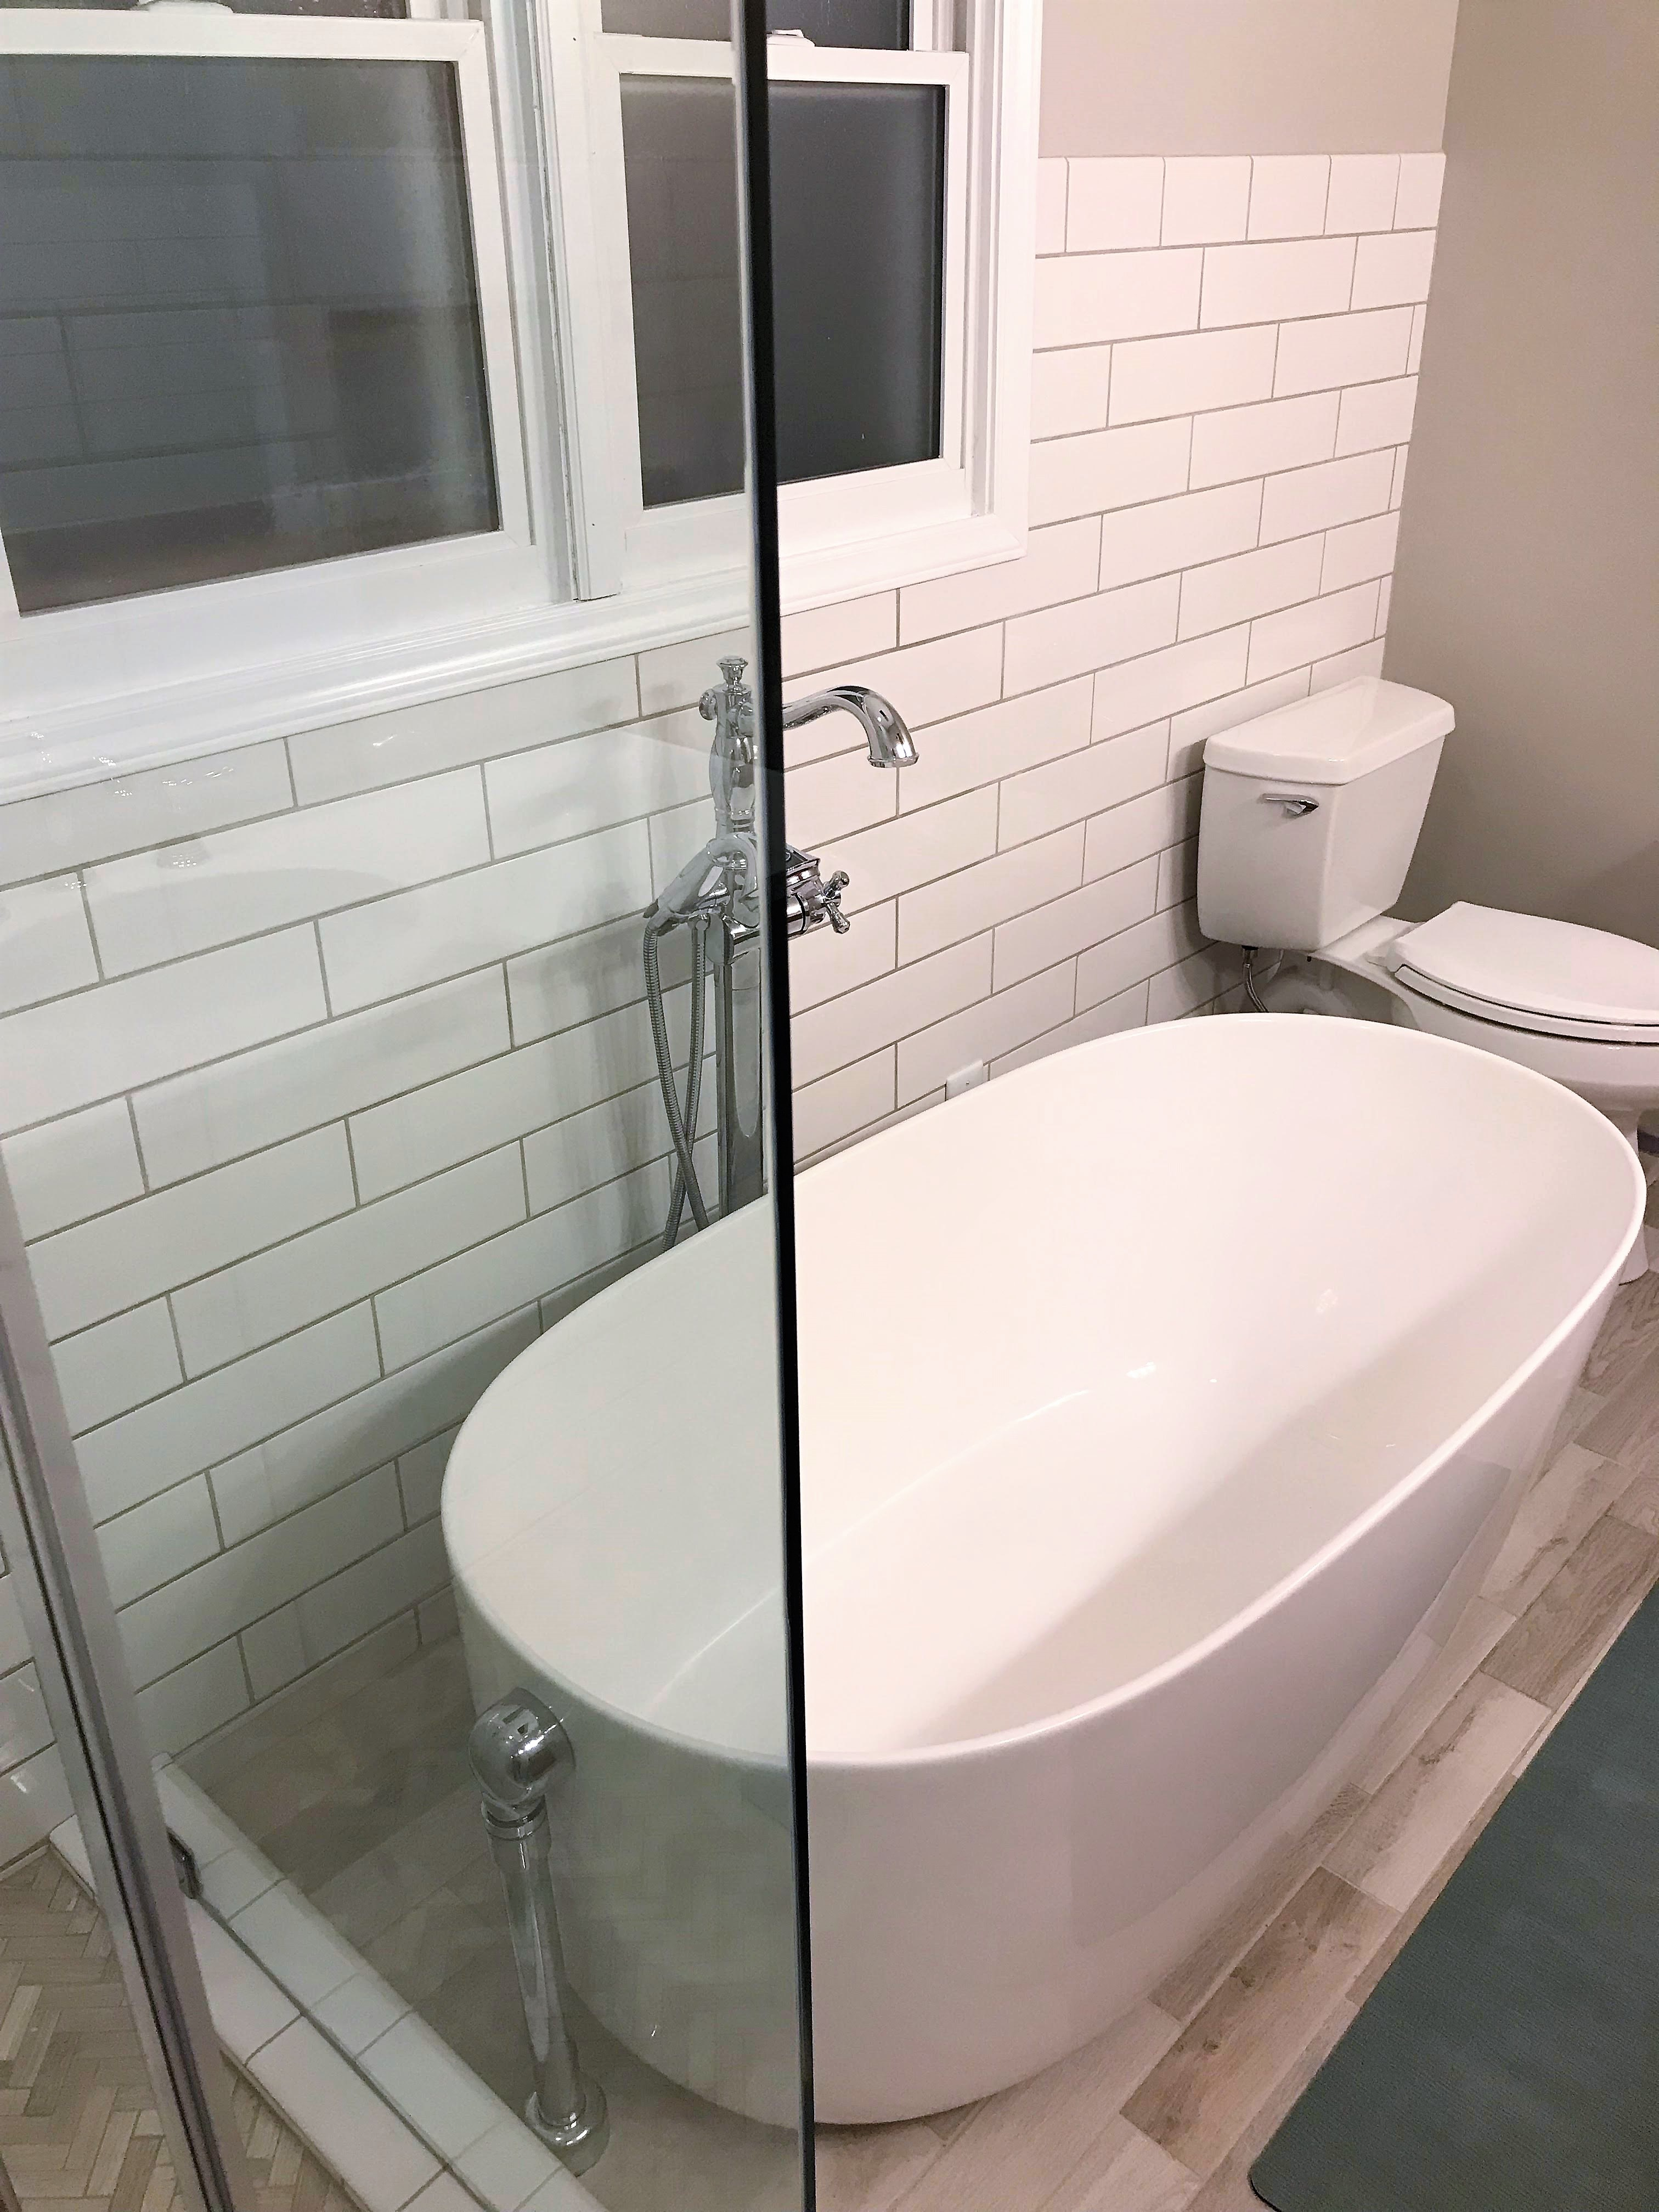 Andrew Helped Us Get The Tub At A Fraction Of The Cost. I Truly Couldnu0027t Be  More Thankful For His Residential Contract Expertise!